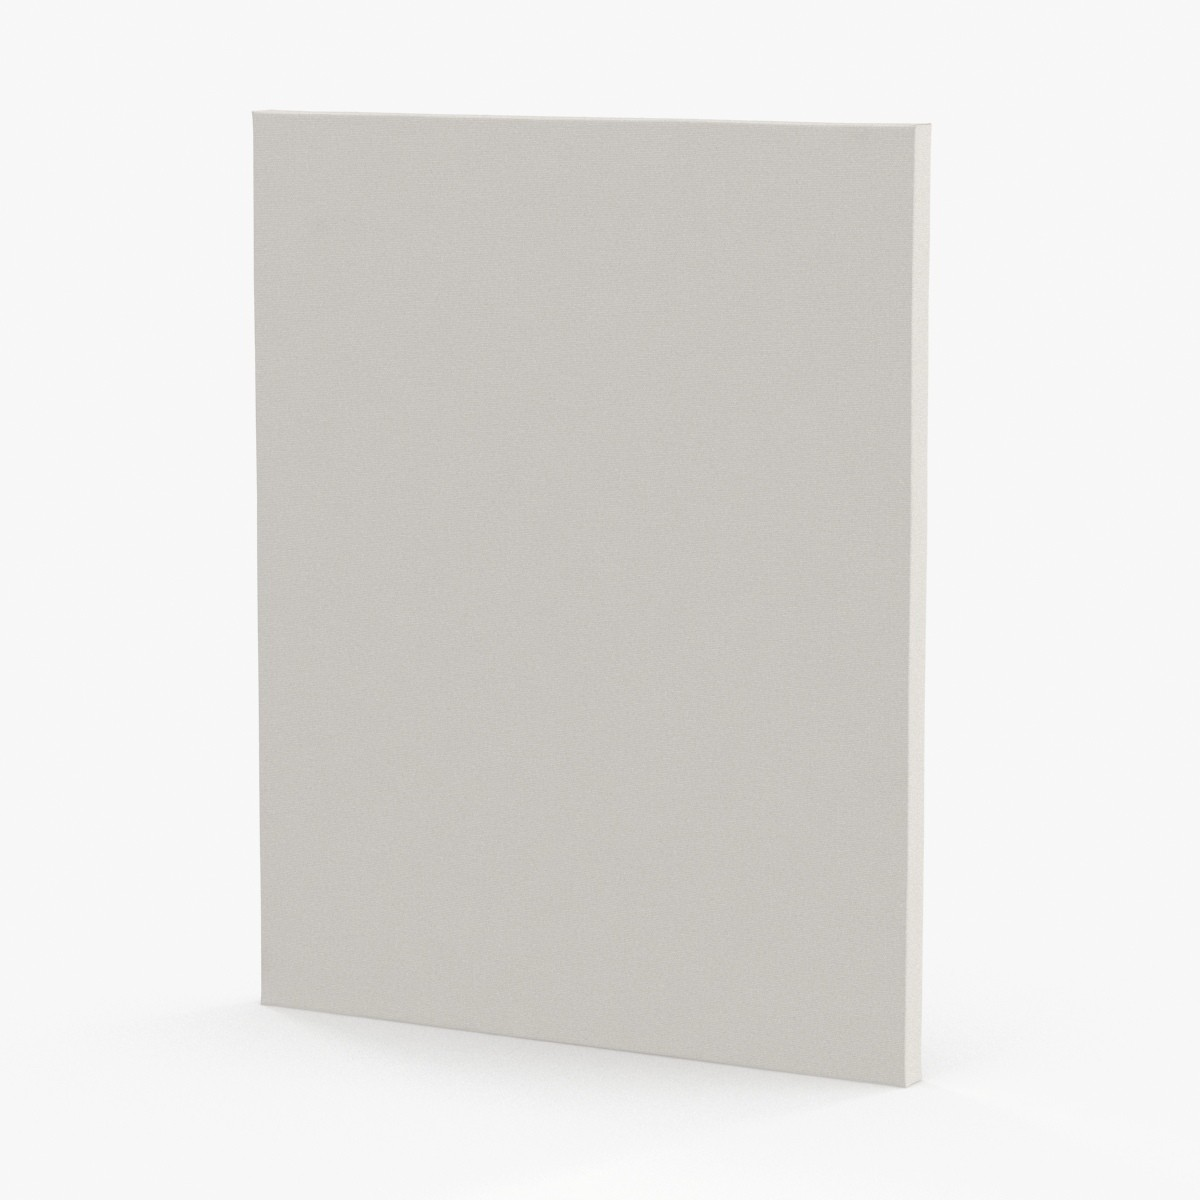 3d blank canvases 16x20